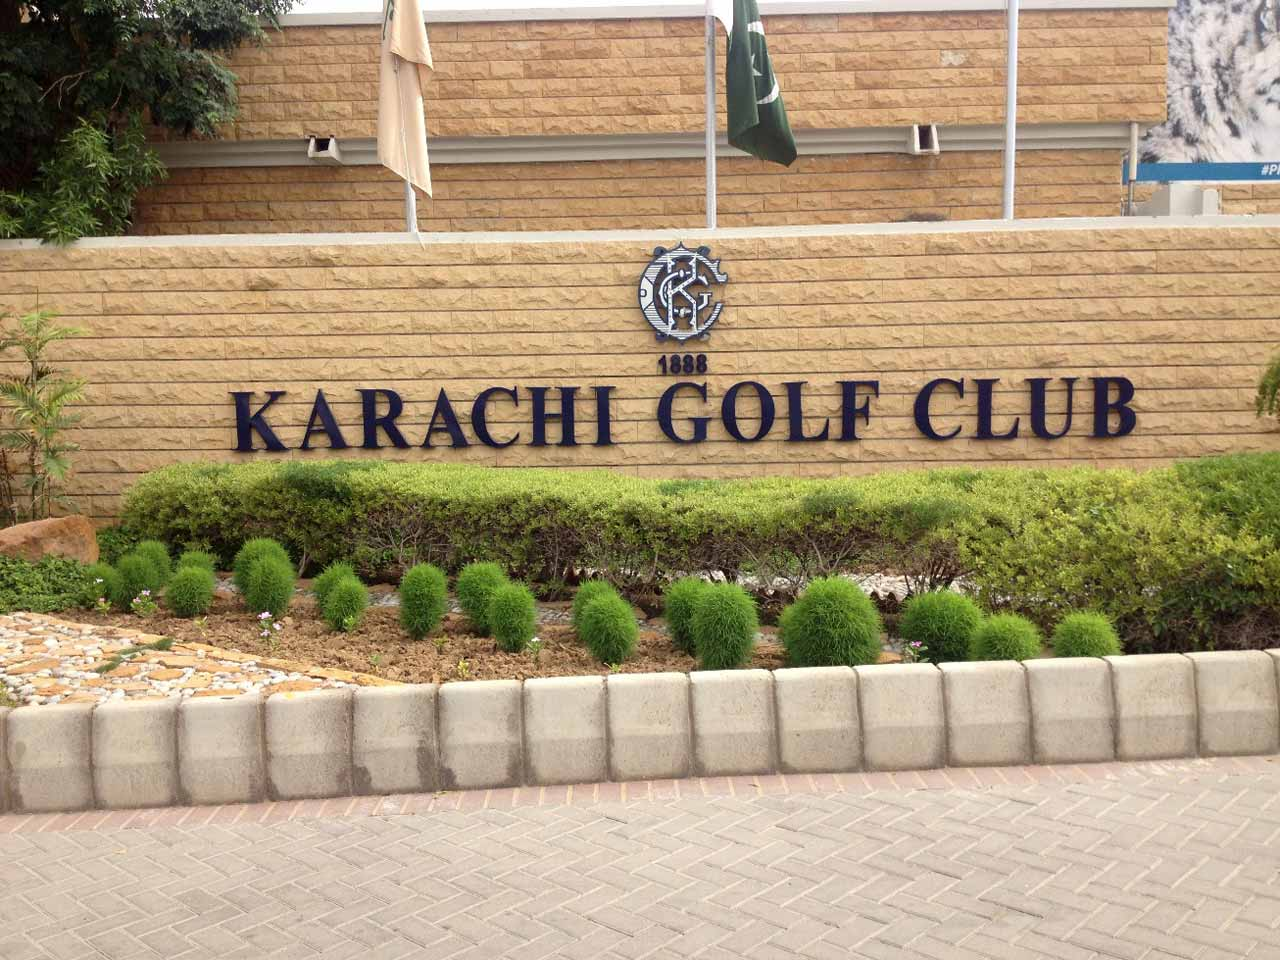 Entrance to Karachi Golf Club